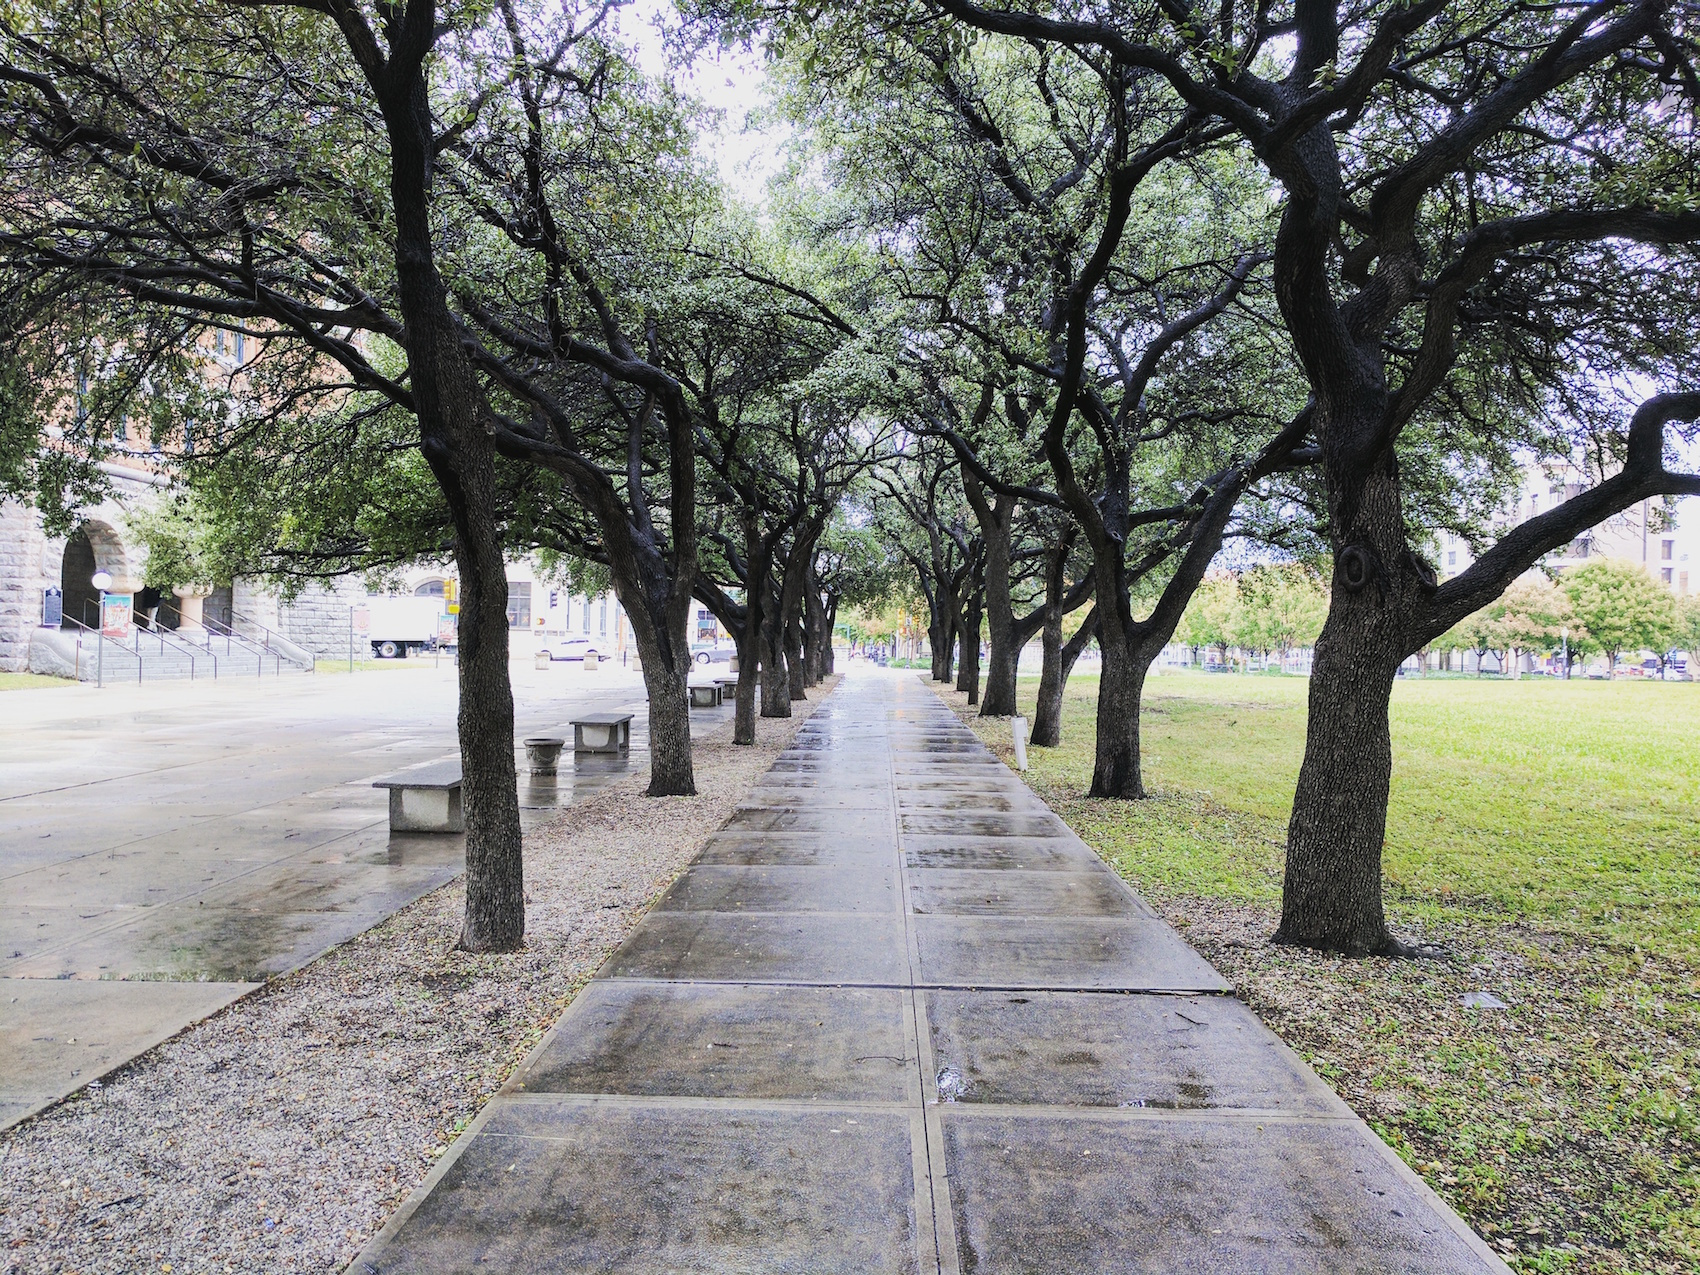 New research has found that during heat waves, urban trees can actually increase air pollution levels and ozone formation.